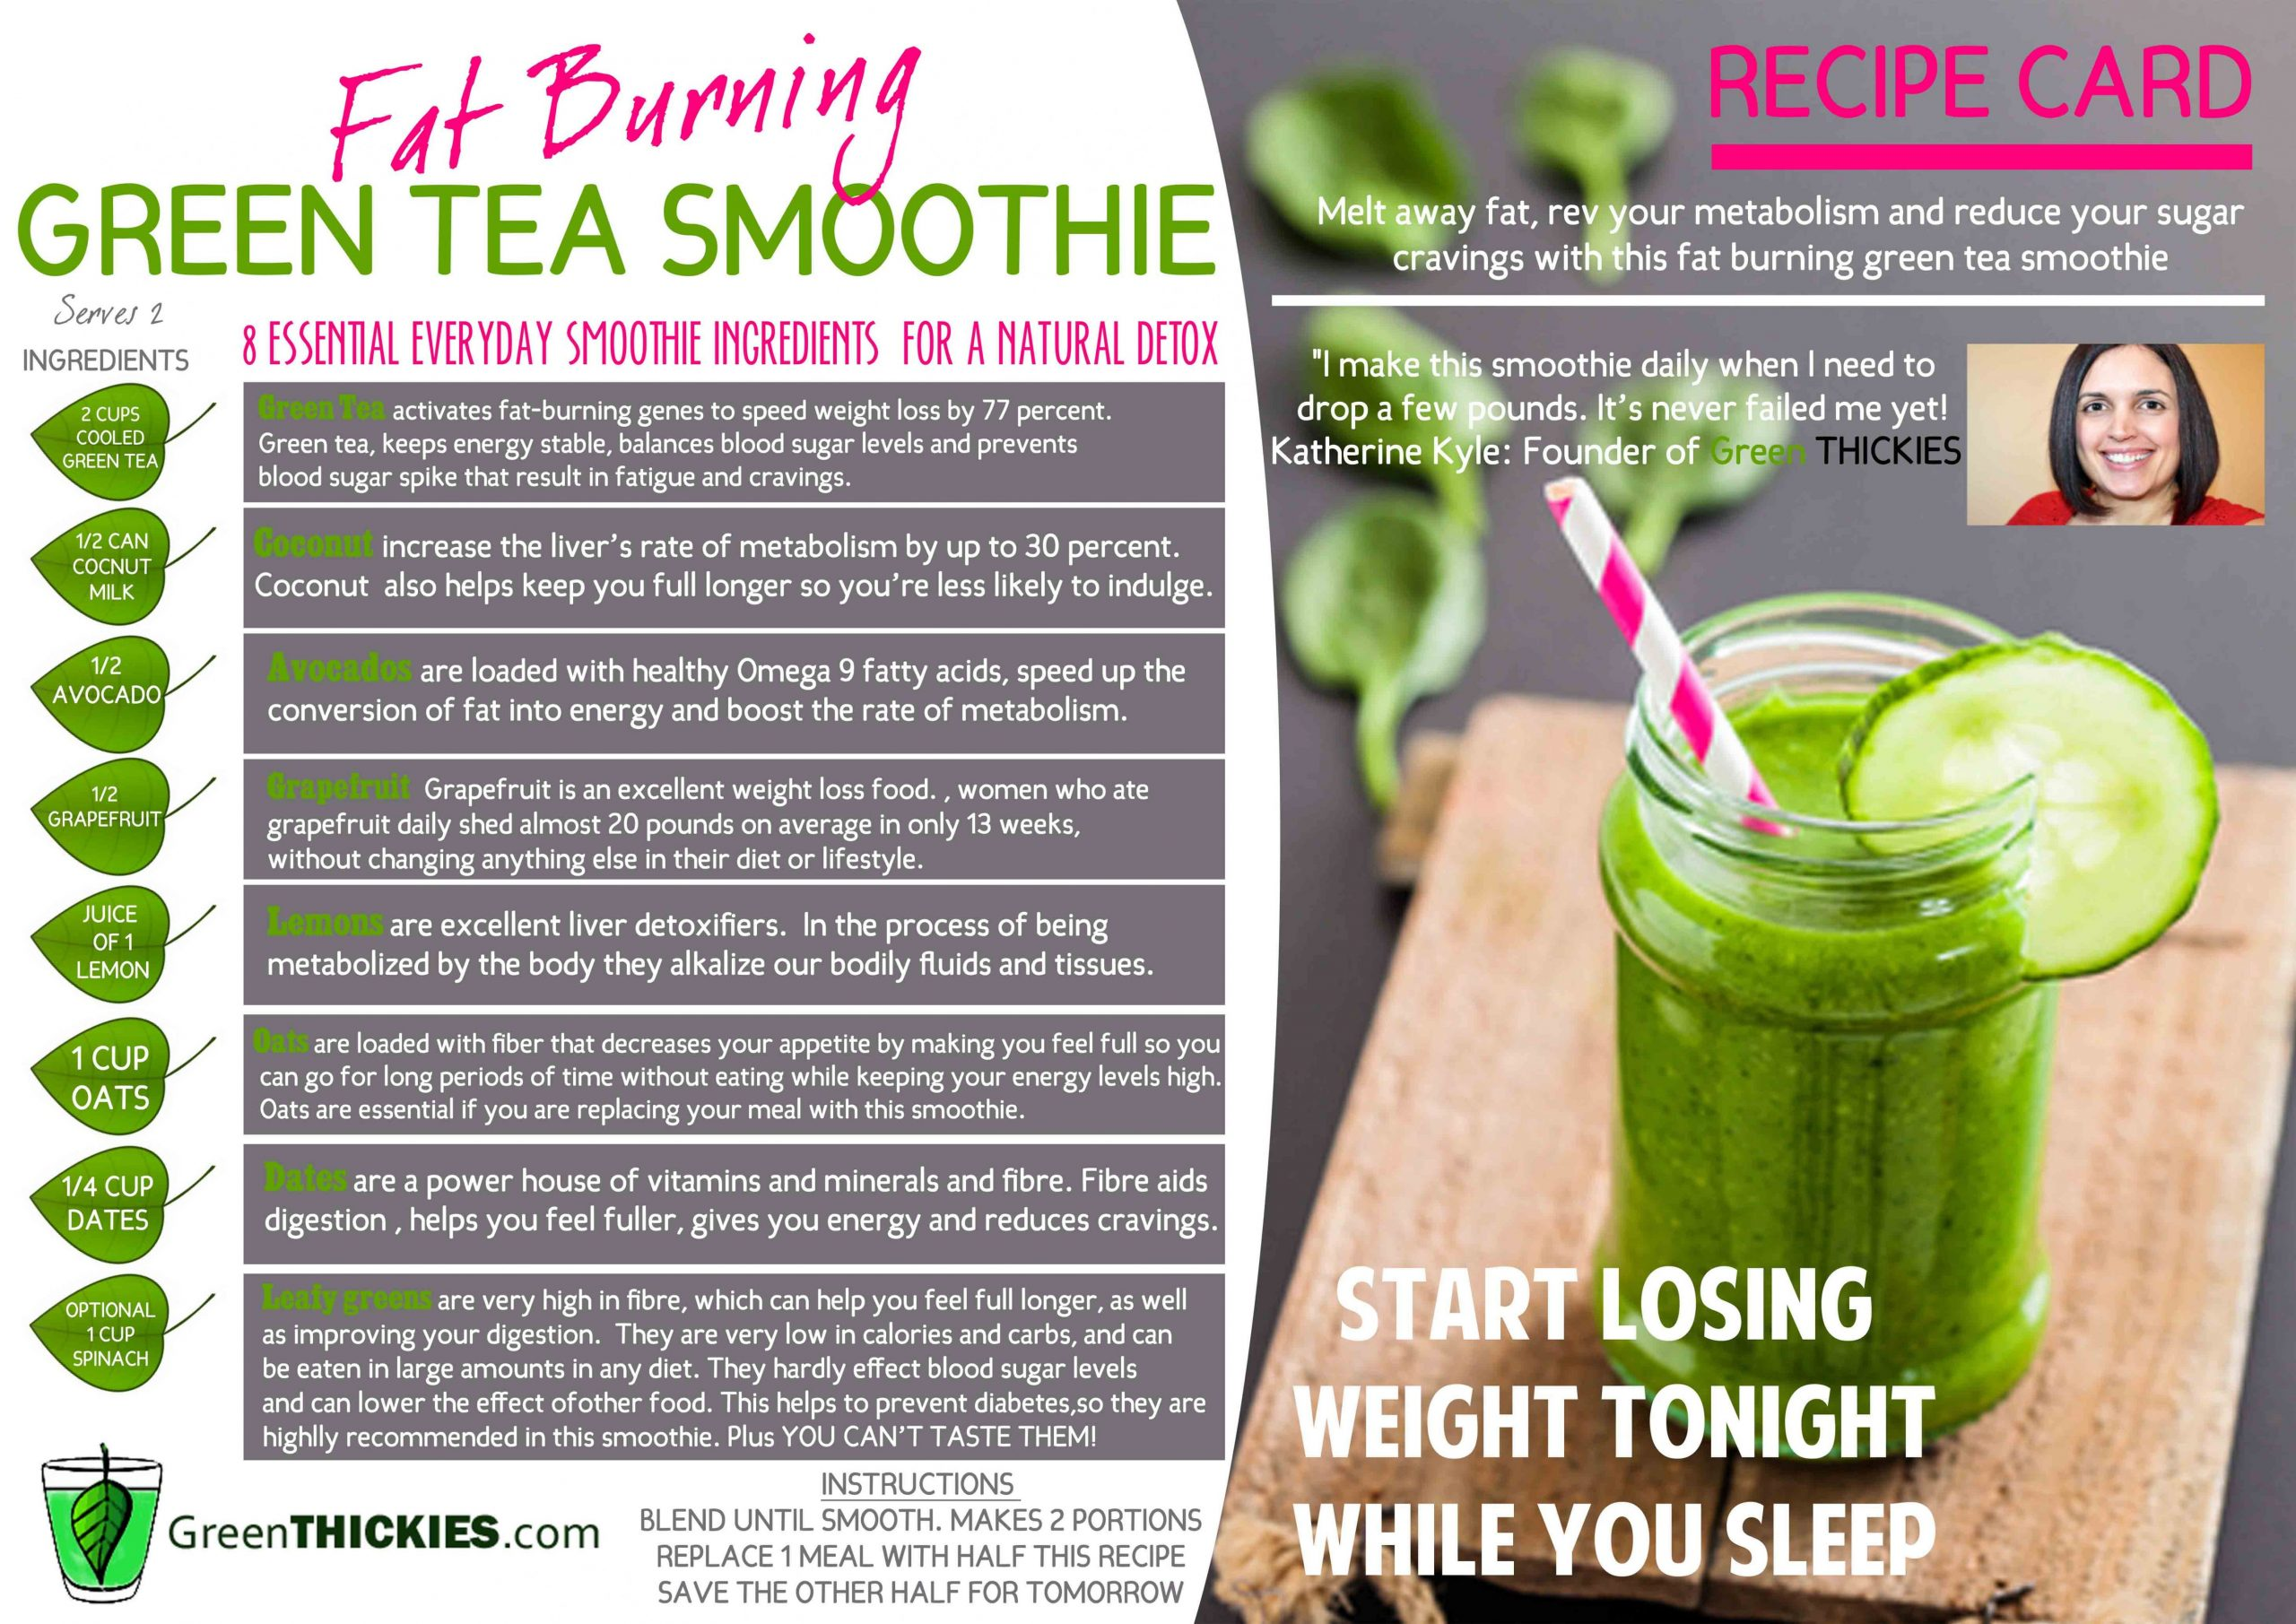 Recipe Card Download - Green Thickies: Filling Green Smoothie Recipes